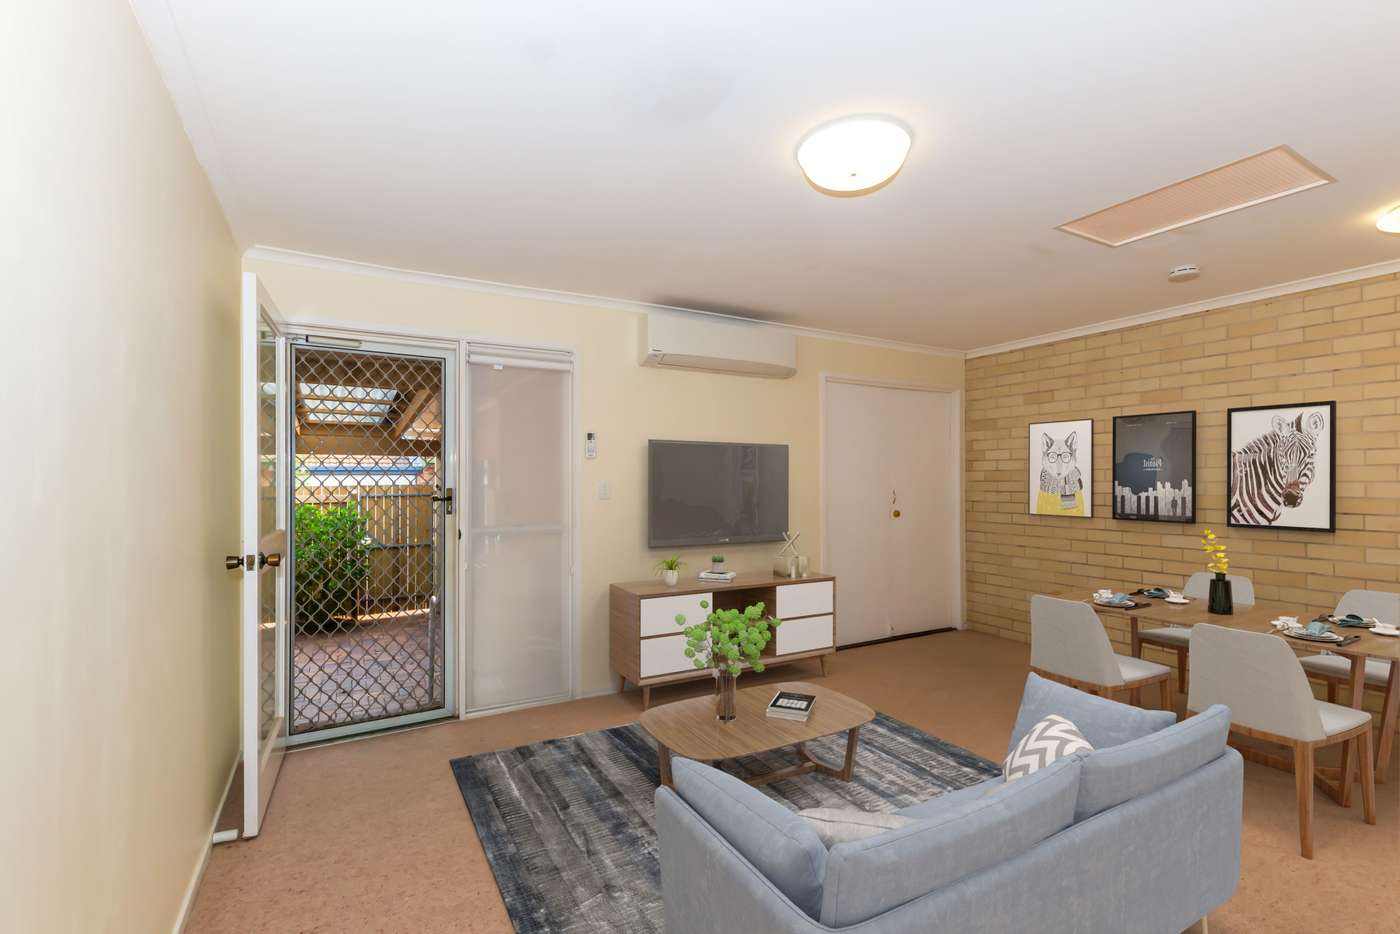 Main view of Homely unit listing, 42/11 West Dianne Street, Lawnton QLD 4501